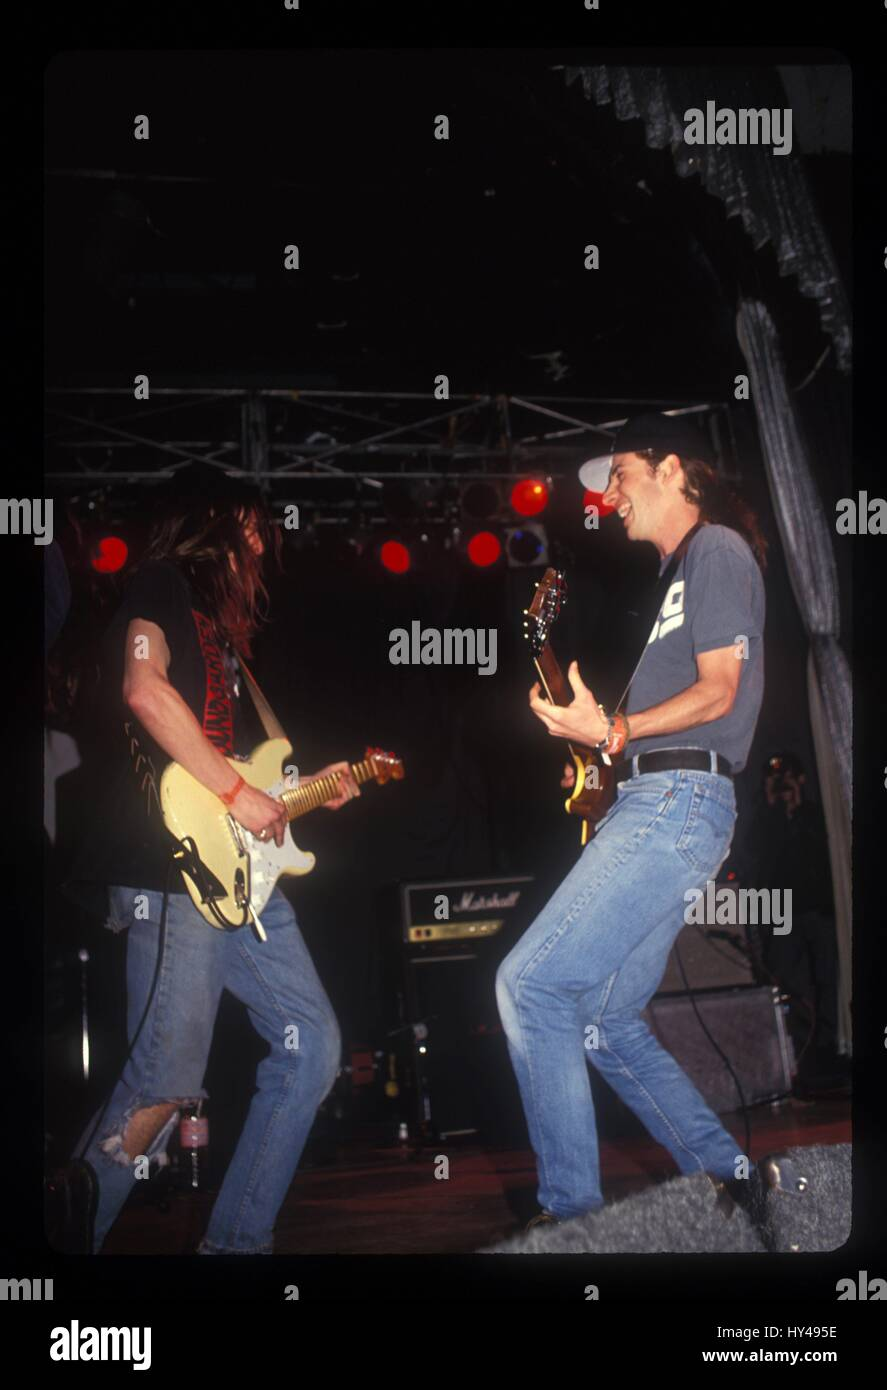 Pearl Jam photographed live at The Palladium in Hollywood, CA on